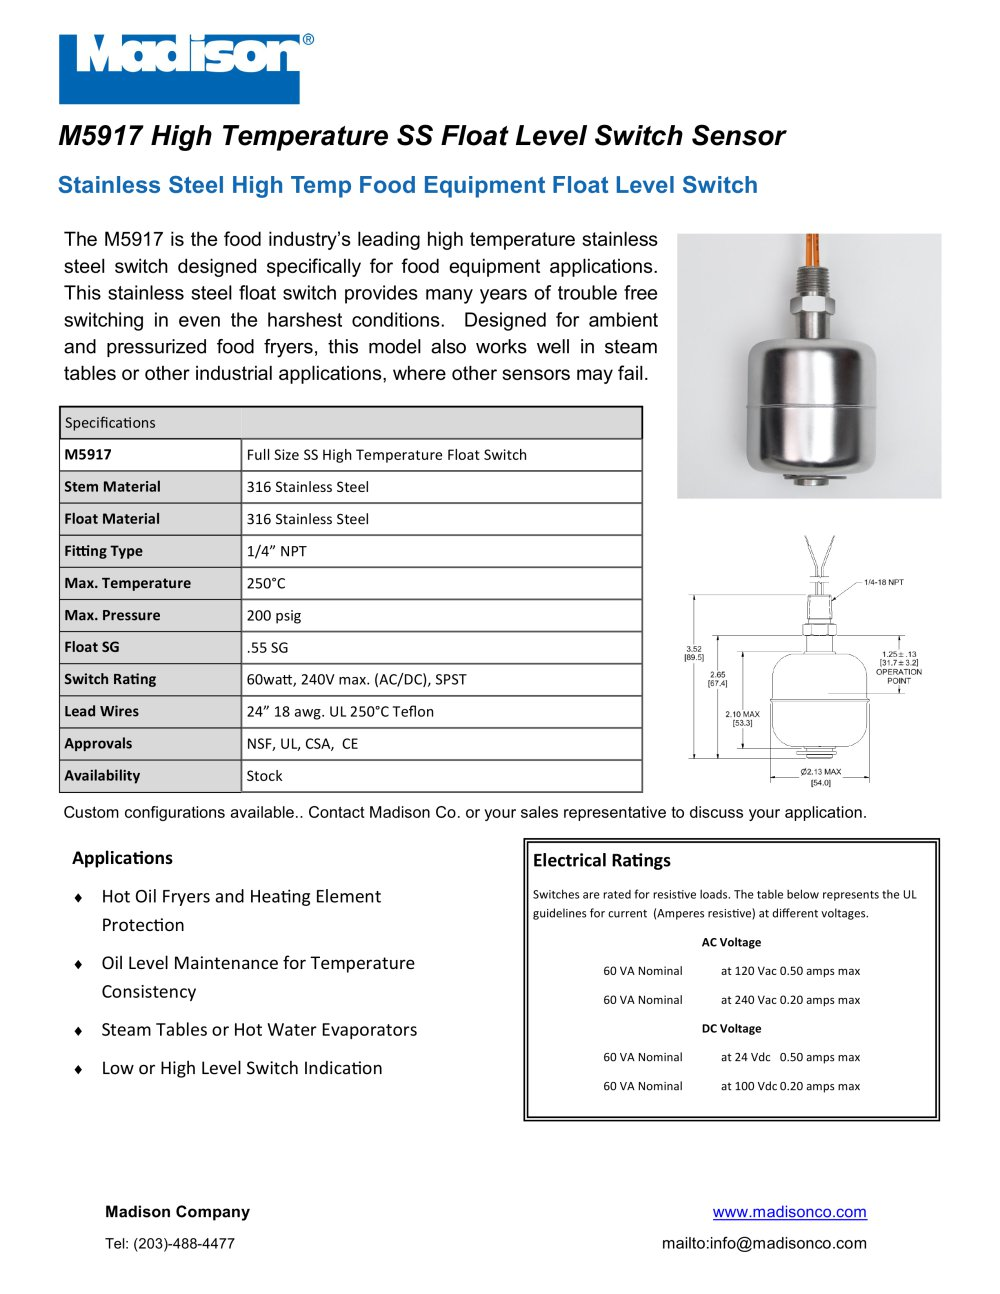 Wiring Diagram For Liquid Level Switches Trusted Wiring Diagram Float  Switch Wiring Diagram Level Transmitter Wiring Diagram